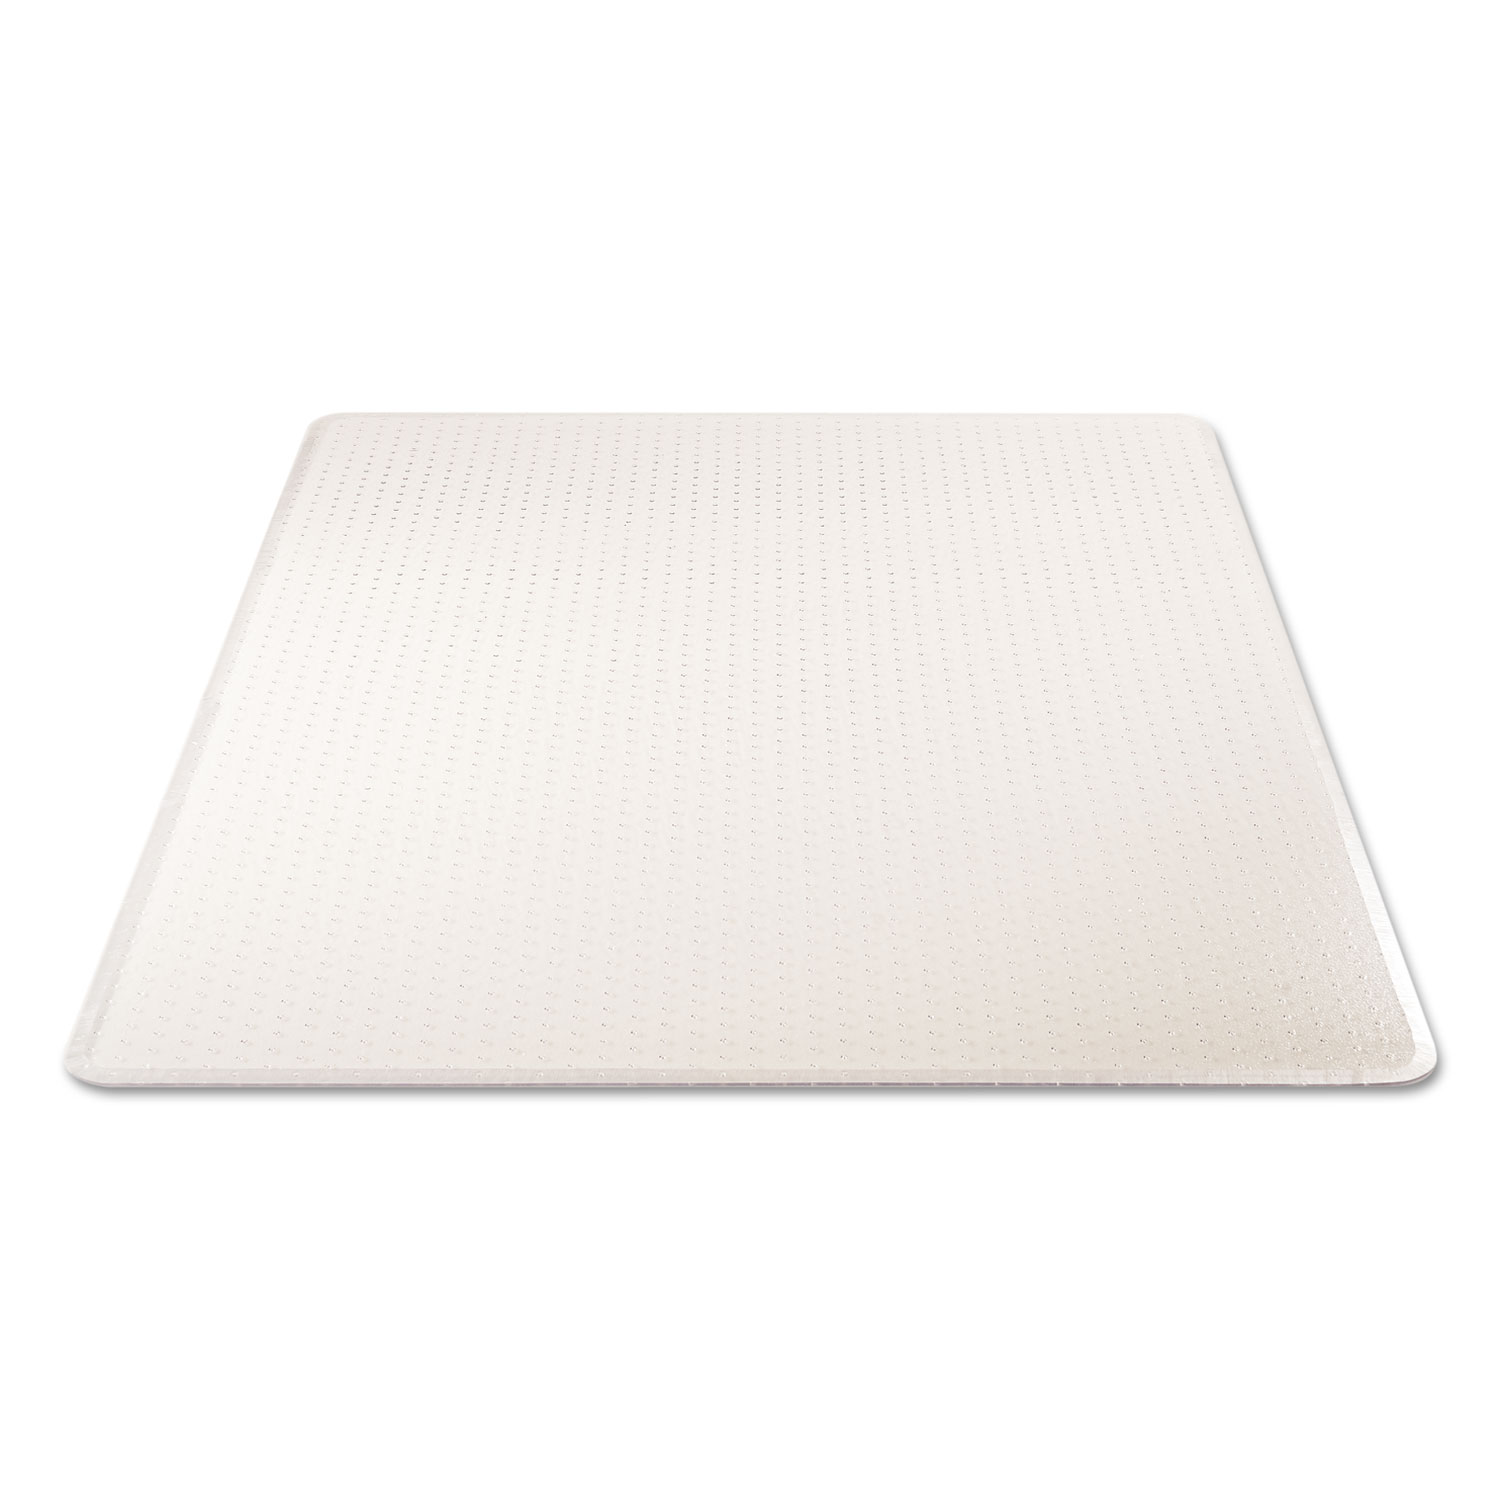 Execumat Intense All Day Use Chair Mat For High Pile Carpet By Deflecto 174 Defcm17443f